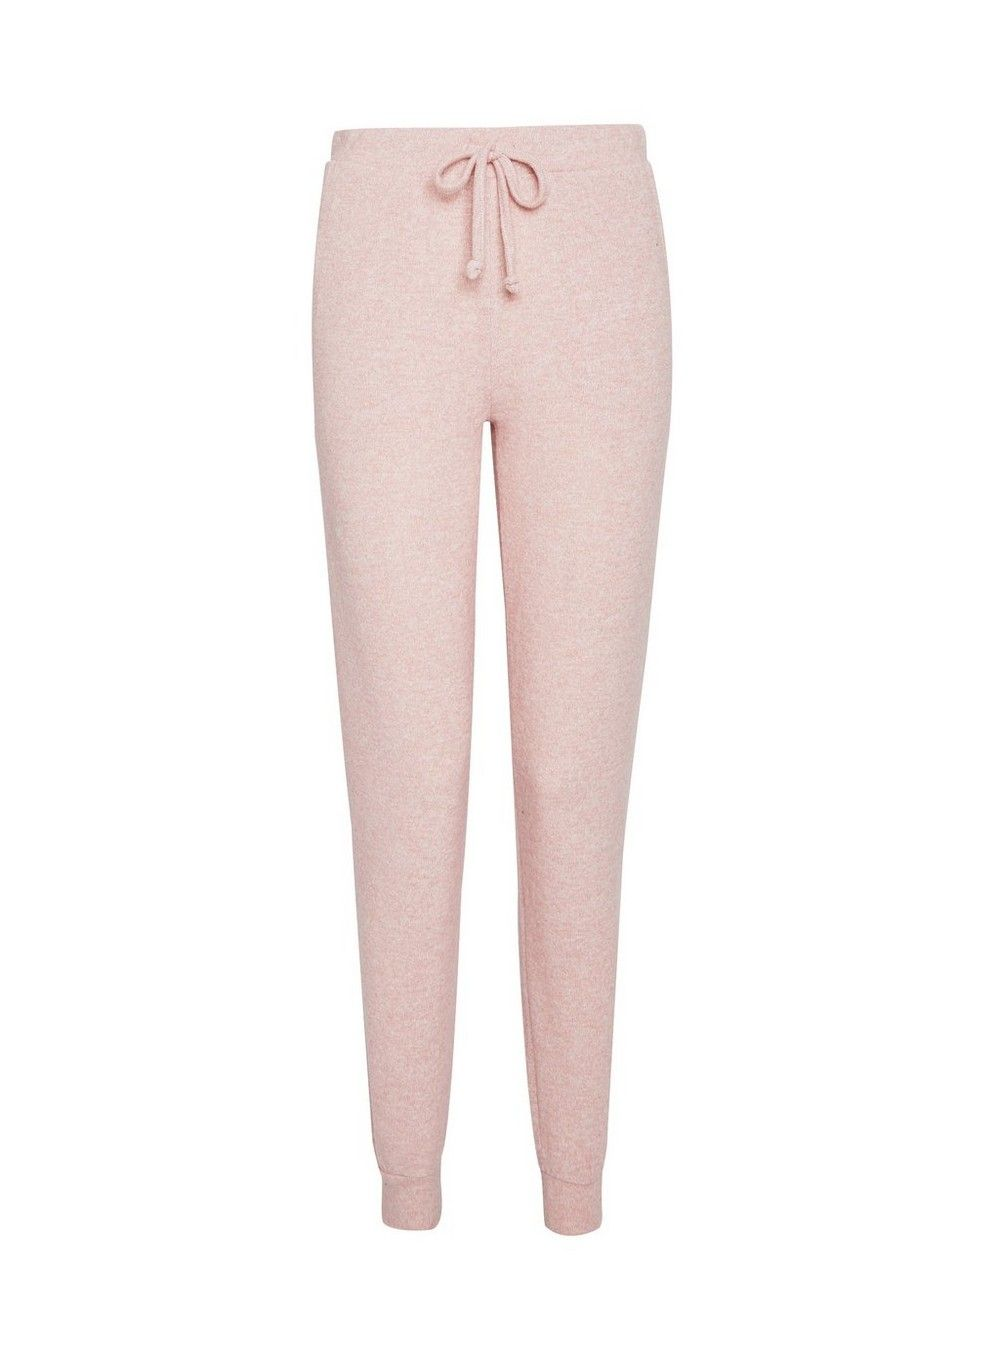 Dorothy Perkins Womens Nude Soft Touch Joggers Trousers Nightwear